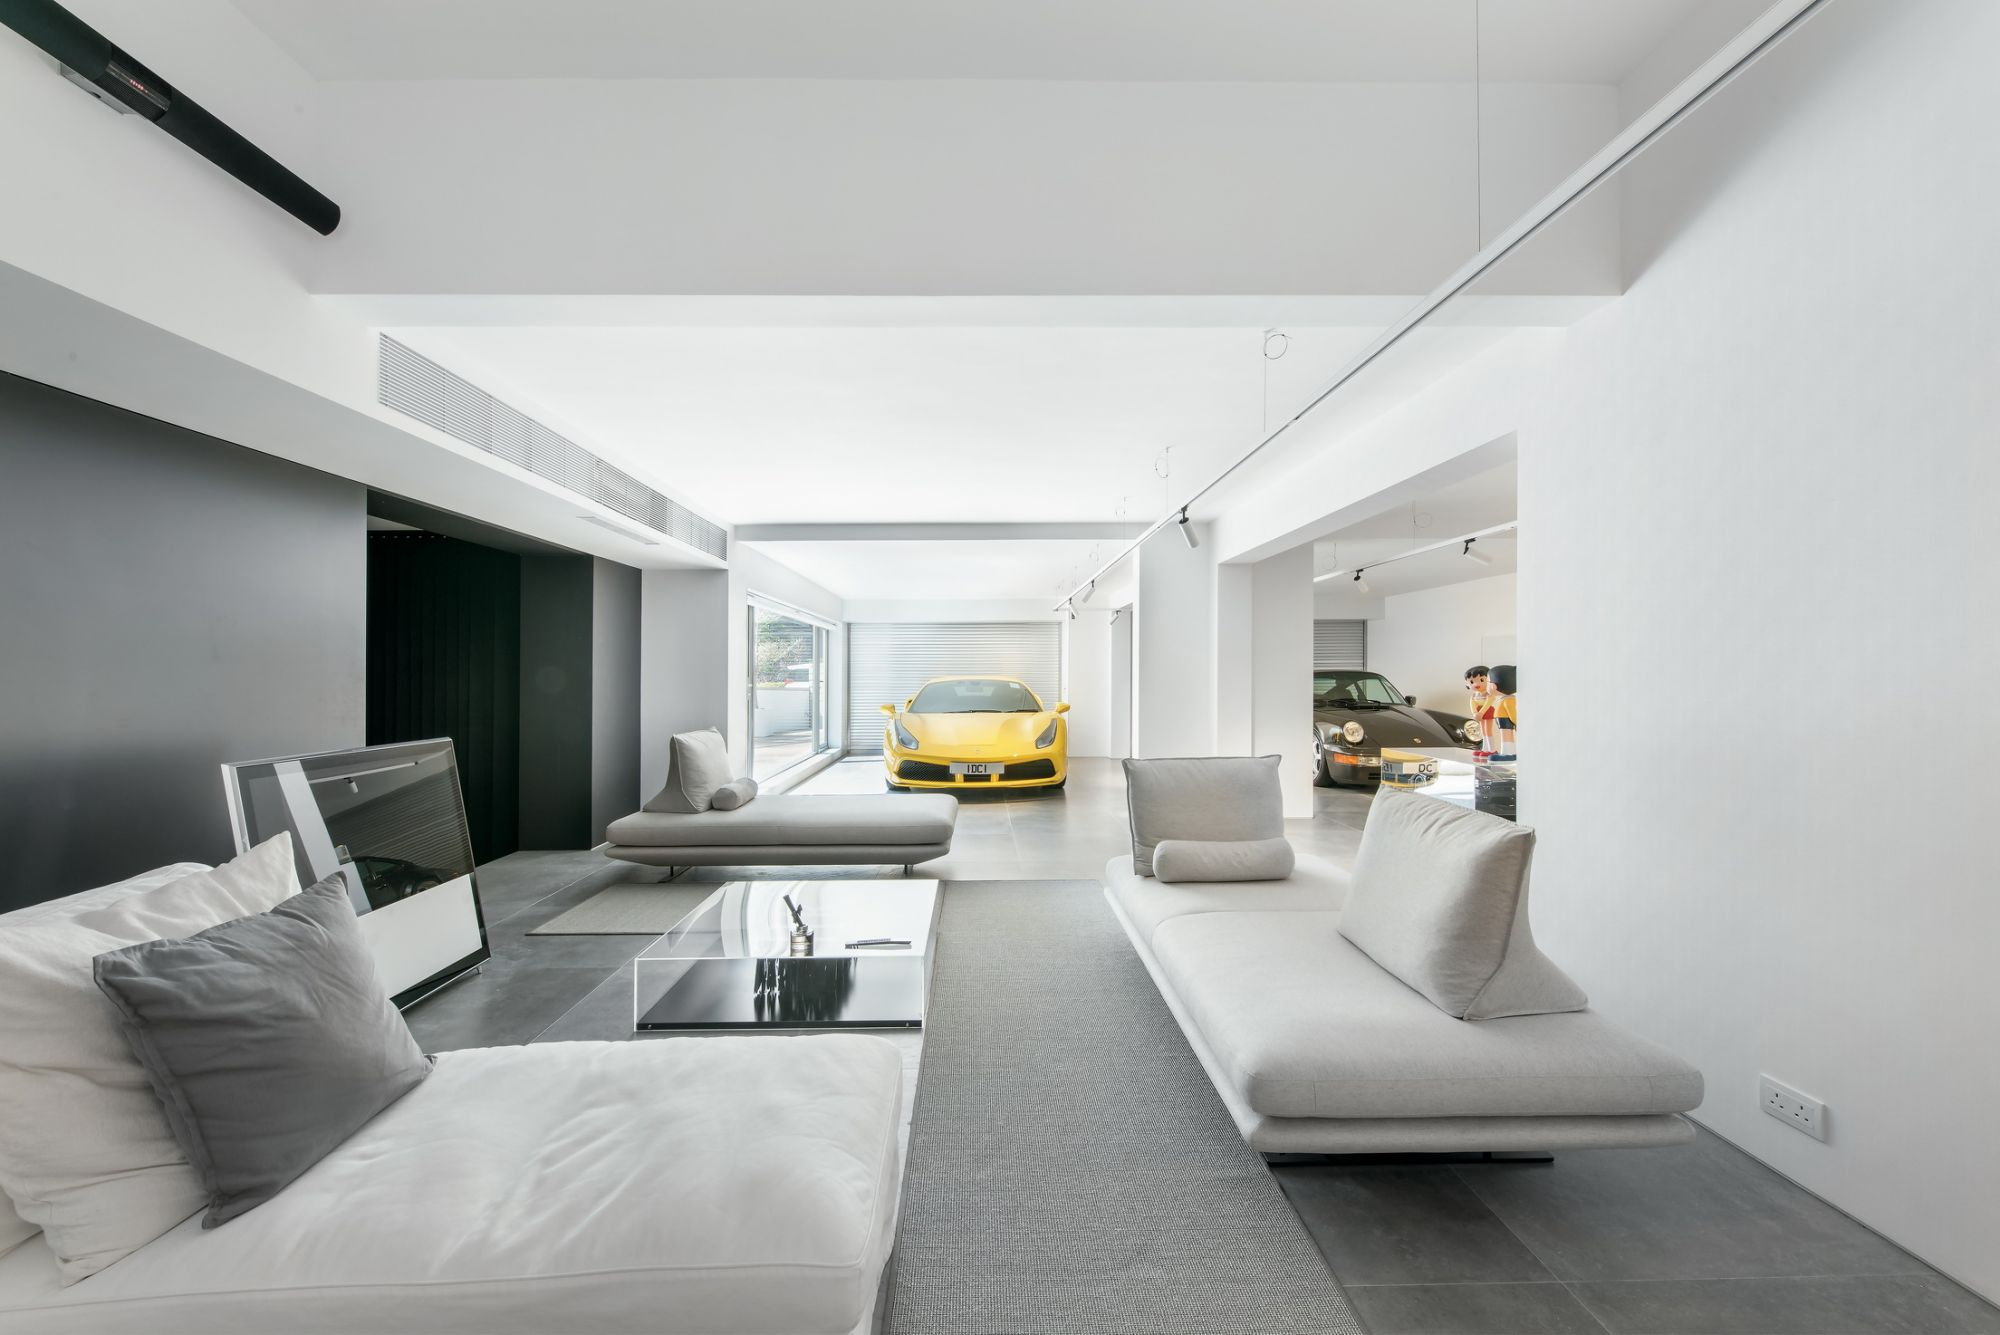 The Ultimate Car-And-Art Lover's Home Design